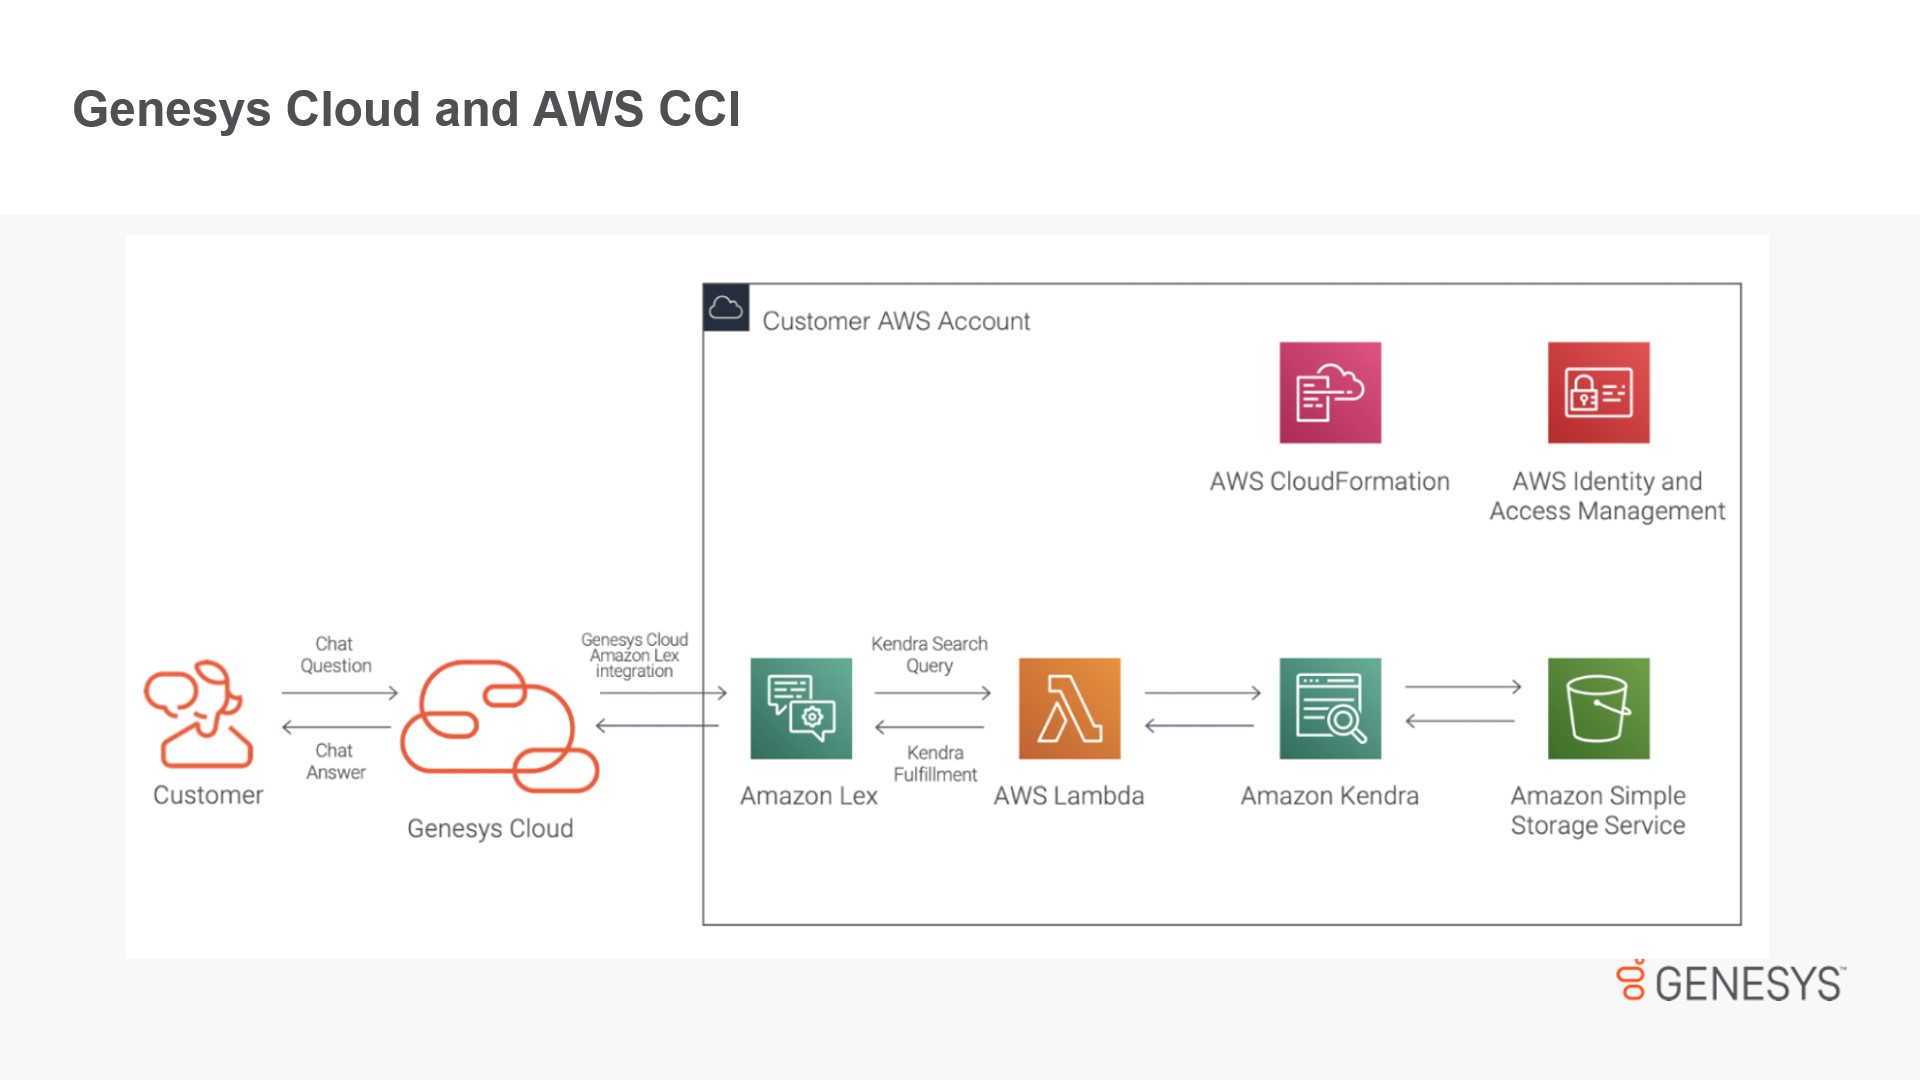 Genesys Cloud and AWS CCI graphic